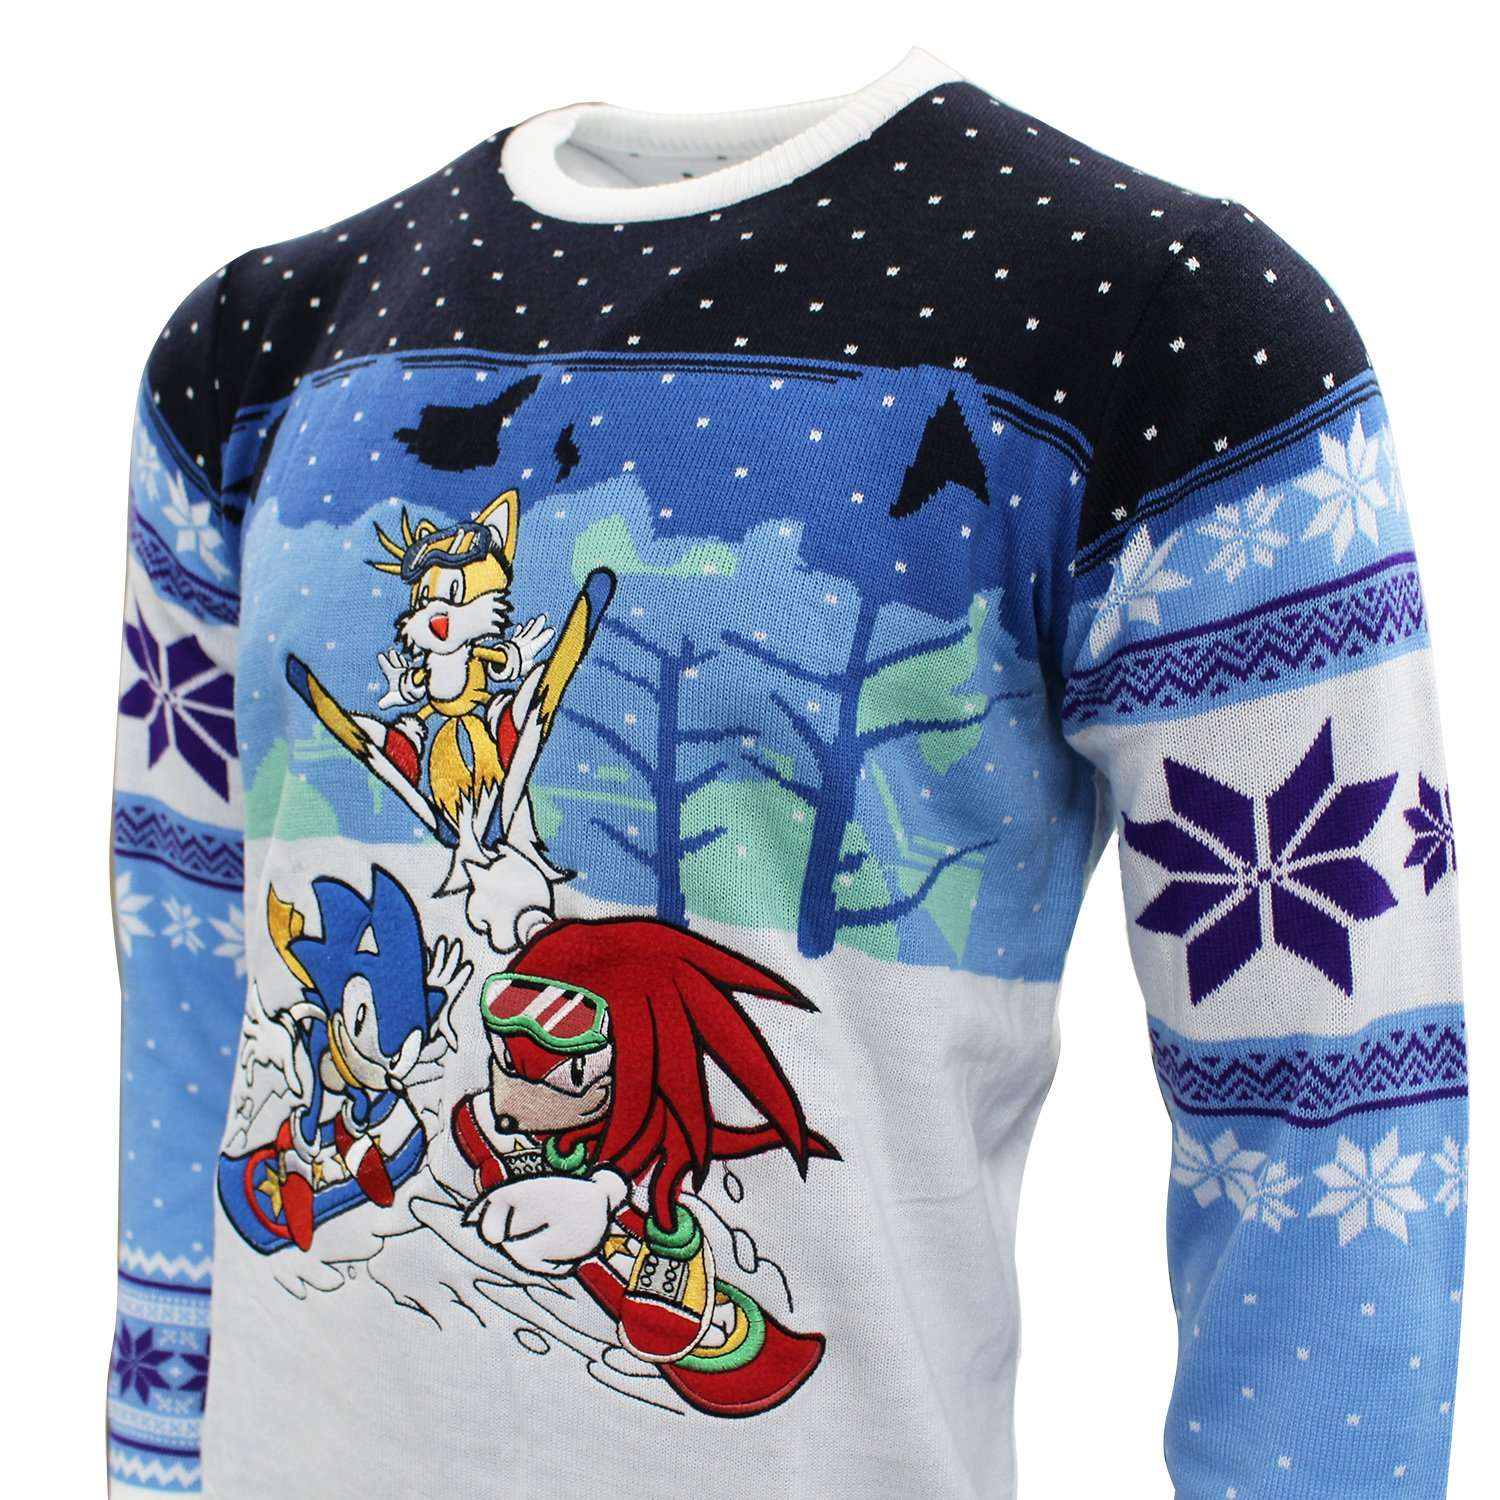 Sonic The Hedgehog Skiing Christmas Jumper / Ugly Sweater